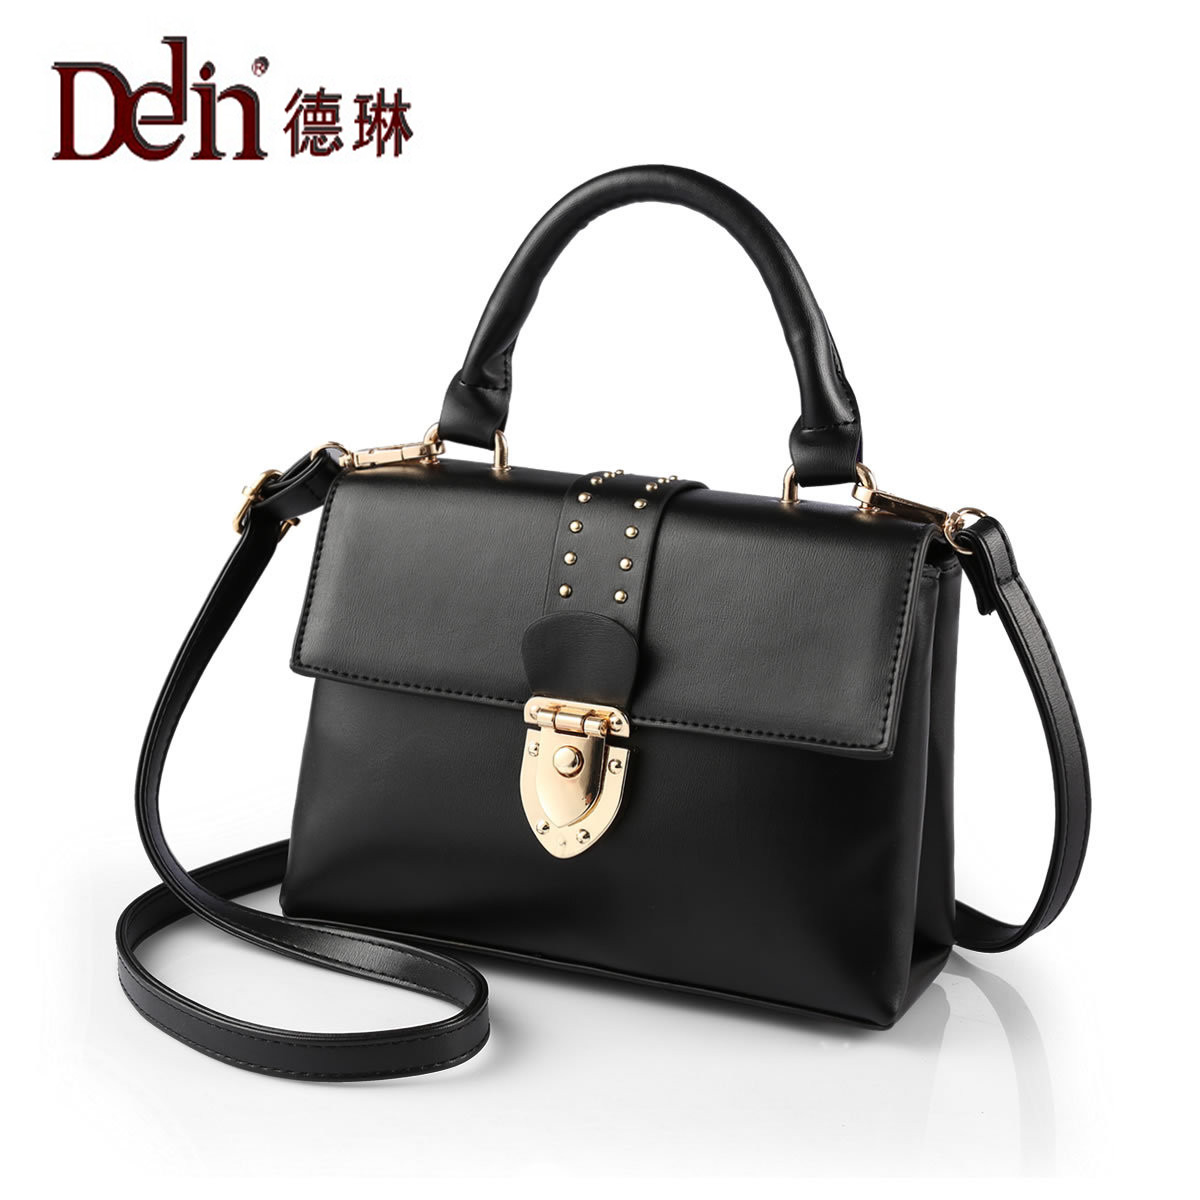 DELIN Manufacturers selling 2017 new female han edition lock rivet single shoulder bag fashion handbags wholesale PU leather